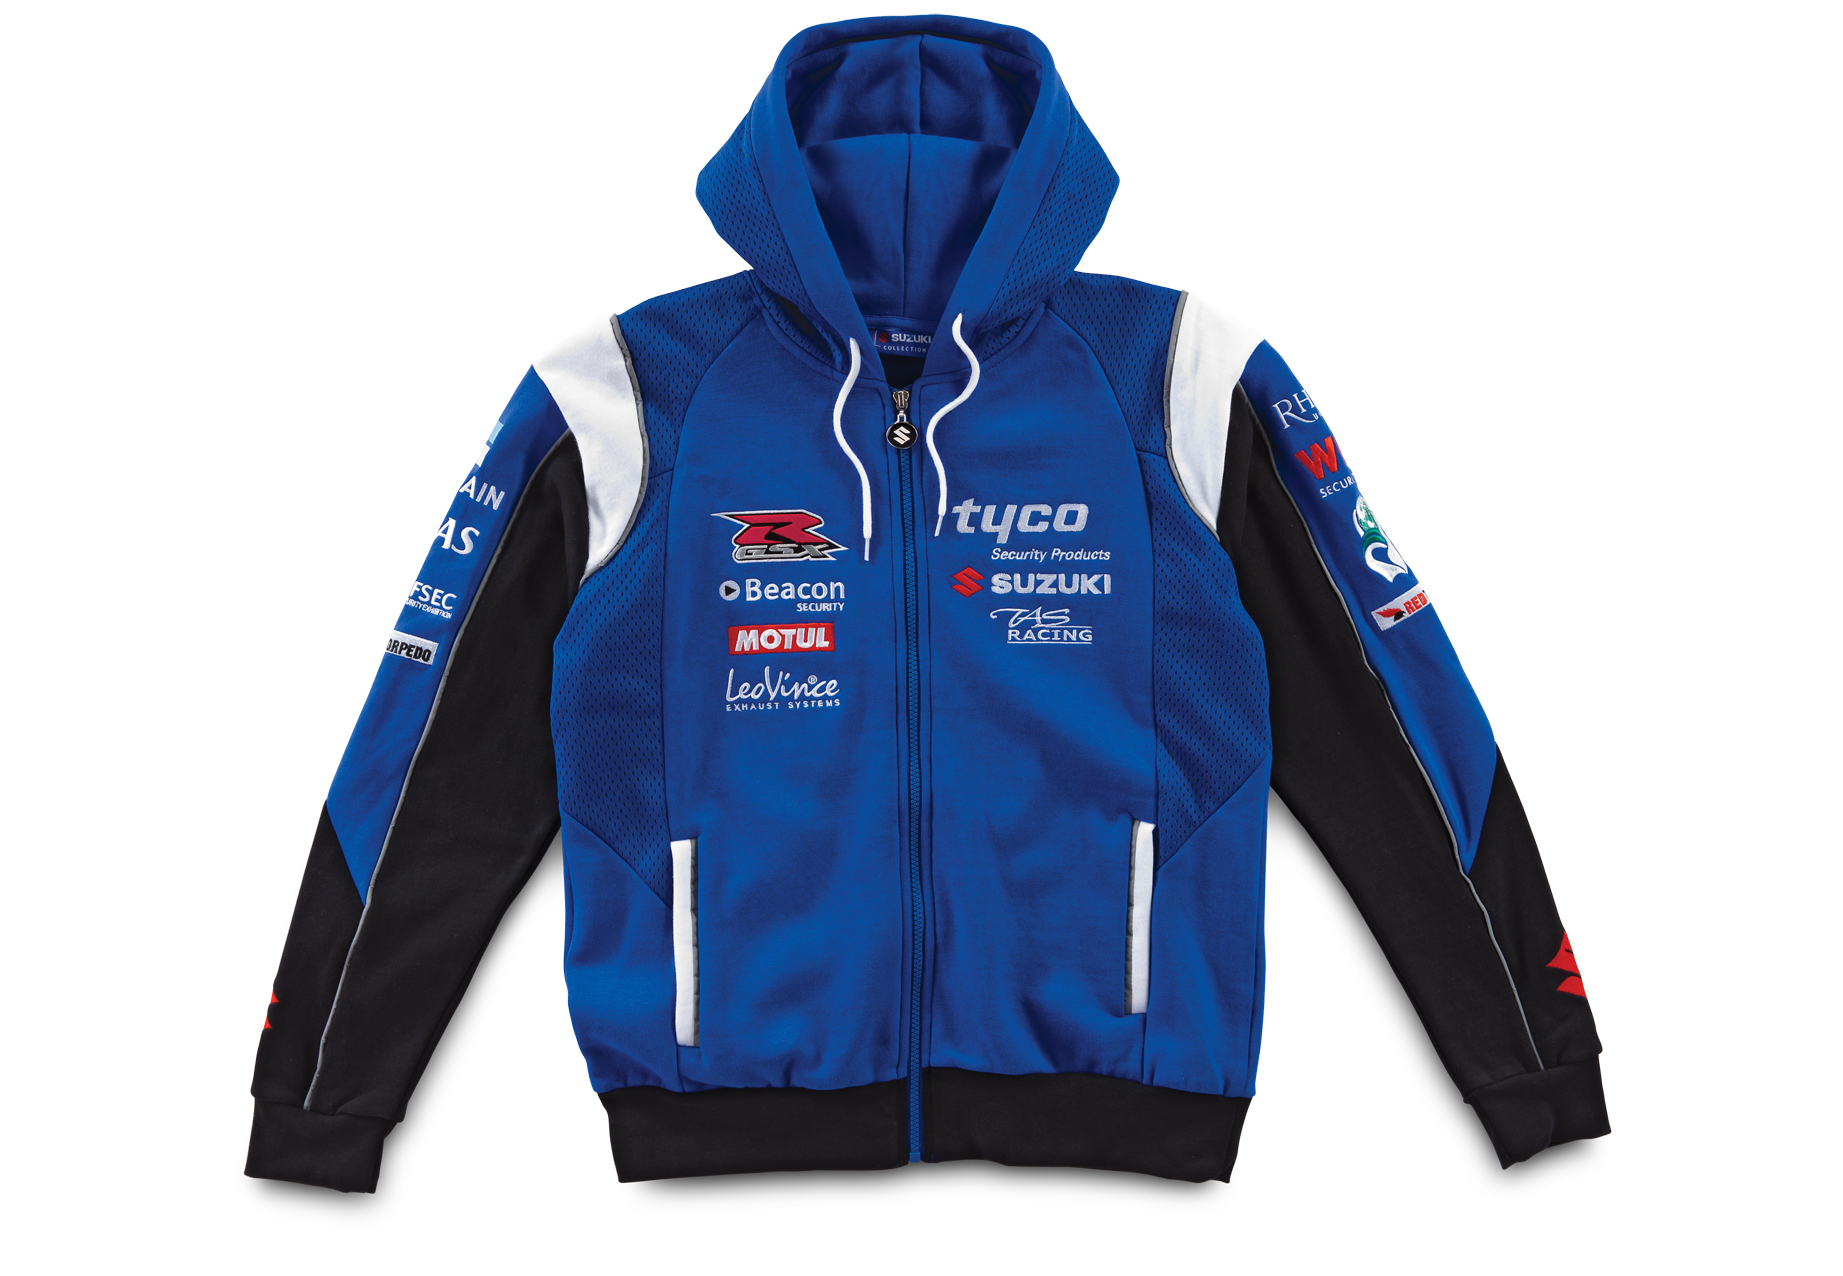 Suzuki Tyco Clothing